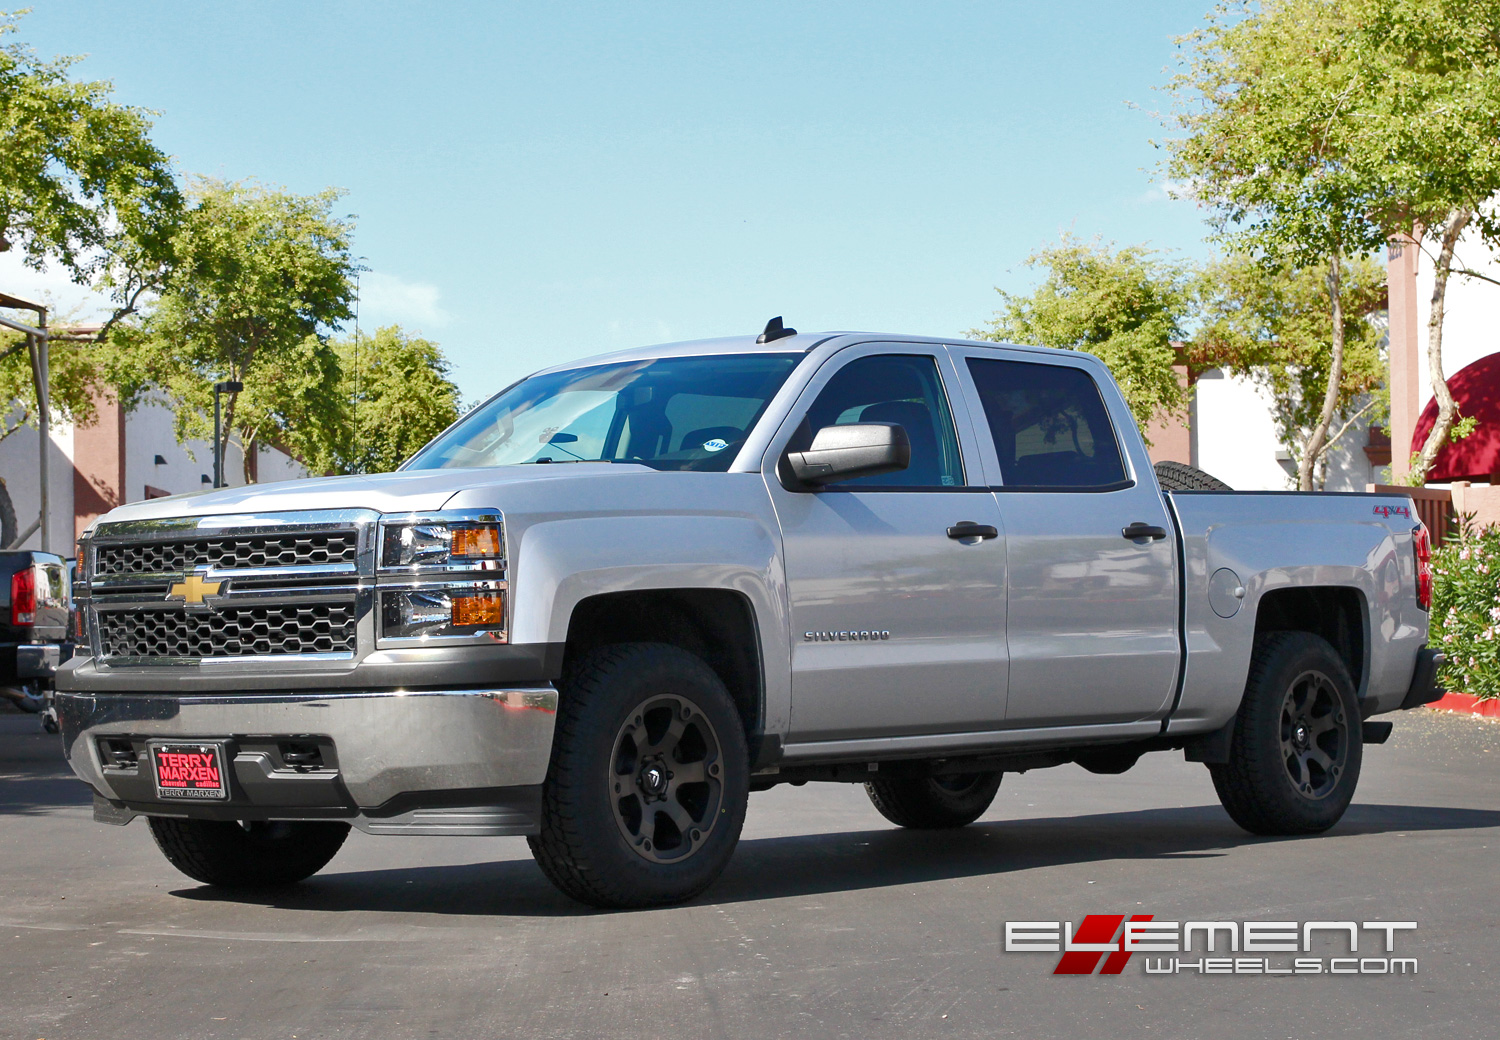 18 Inch Fuel Beast Black Machined Wheels On 2015 Chevy